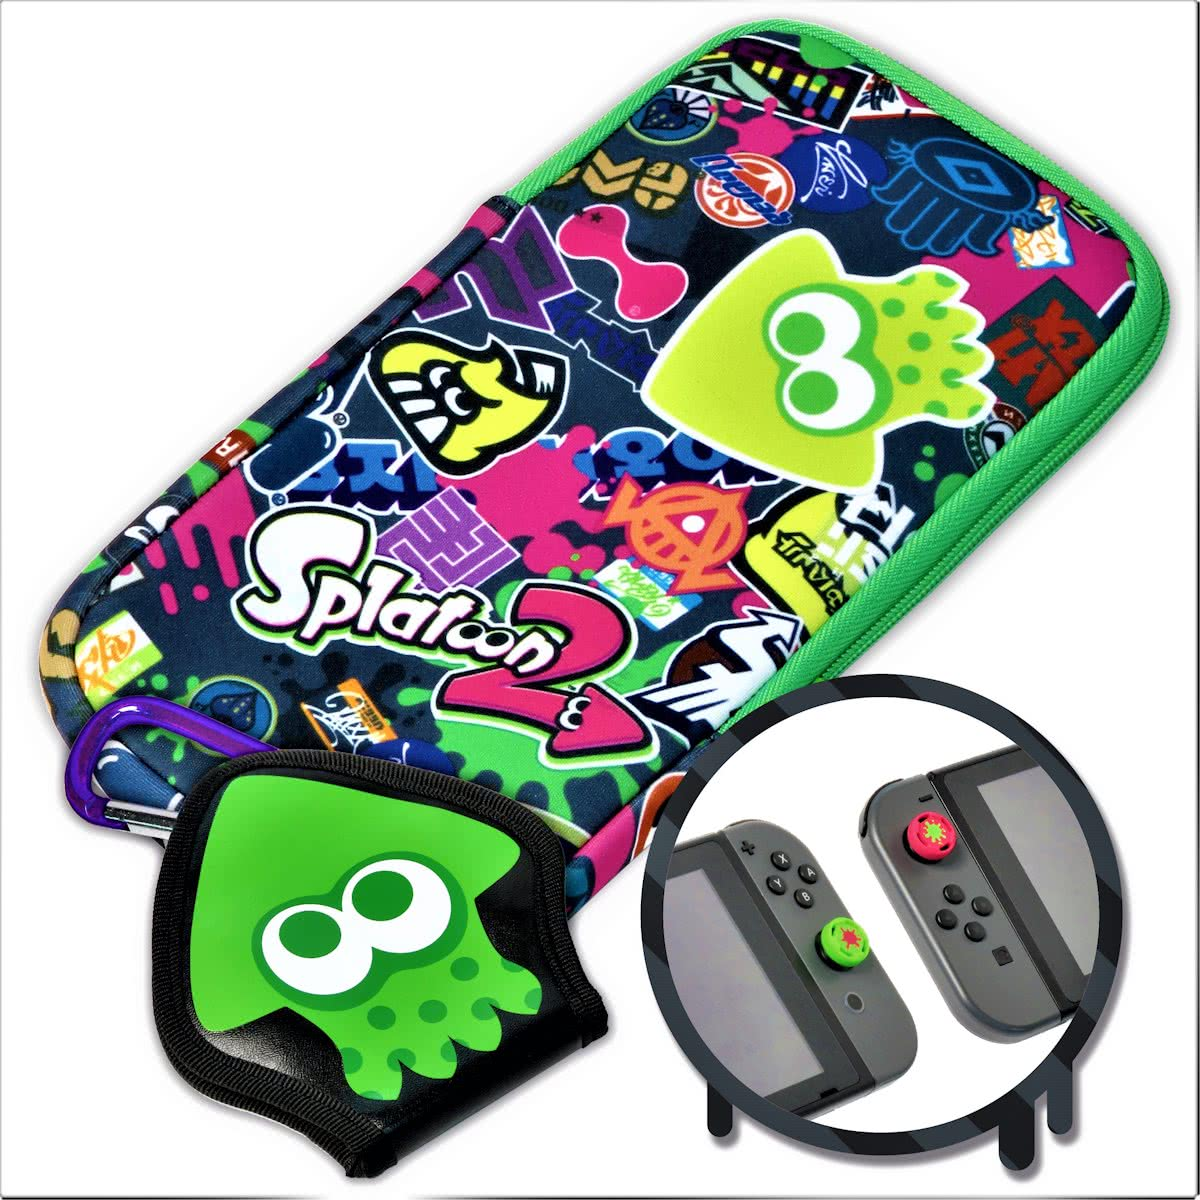 Splatoon 2 Splat Pack - Nintendo Switch